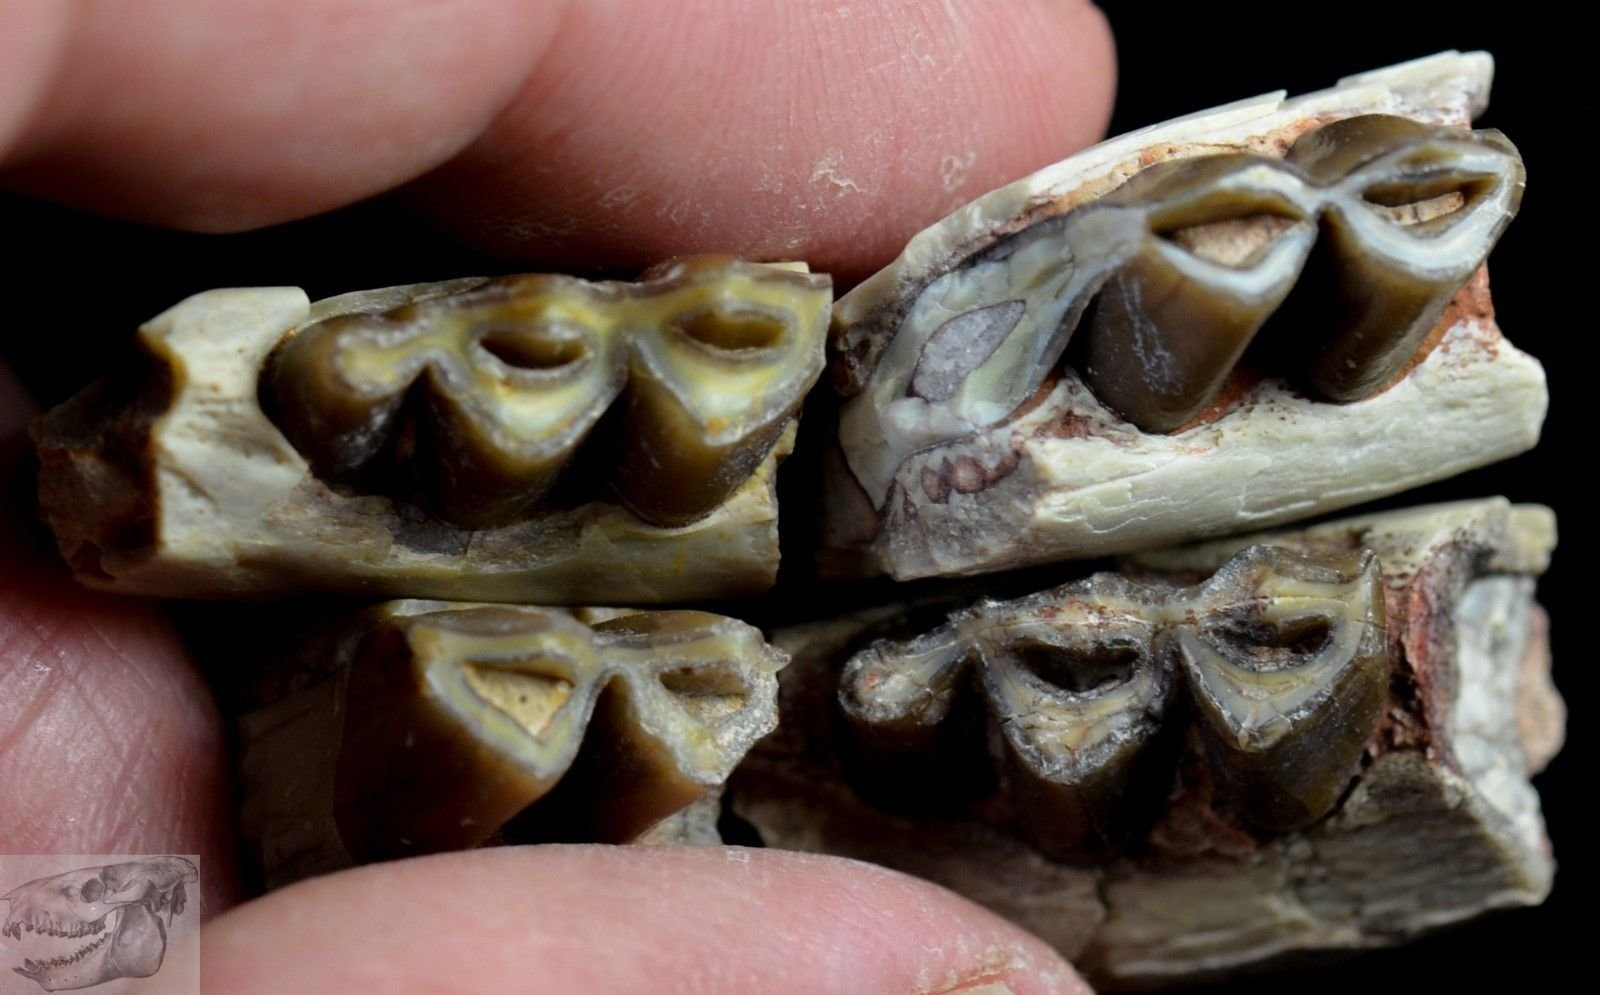 Poebrotherium4 Single Teeth - Early Camel Fossil 1.jpg